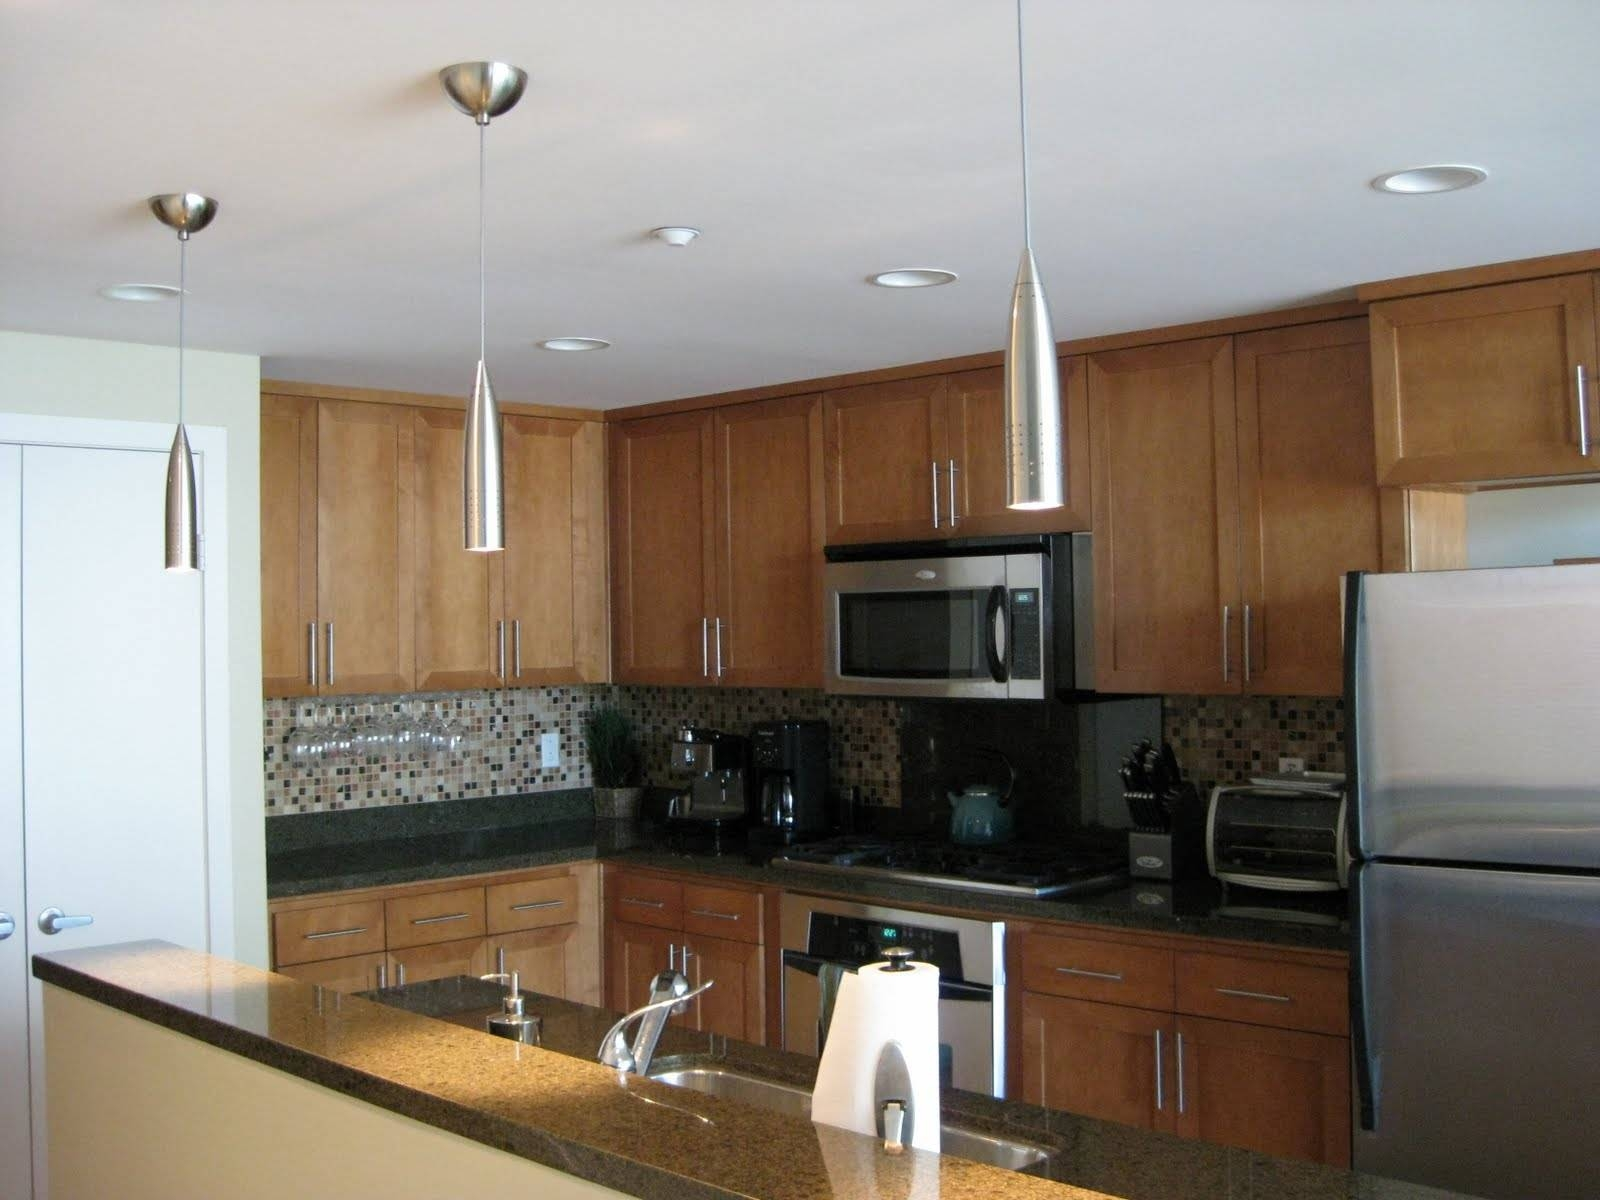 Great Pendant Light Fixtures For Kitchen Island — Decor Trends inside Stainless Steel Kitchen Lights (Image 6 of 15)